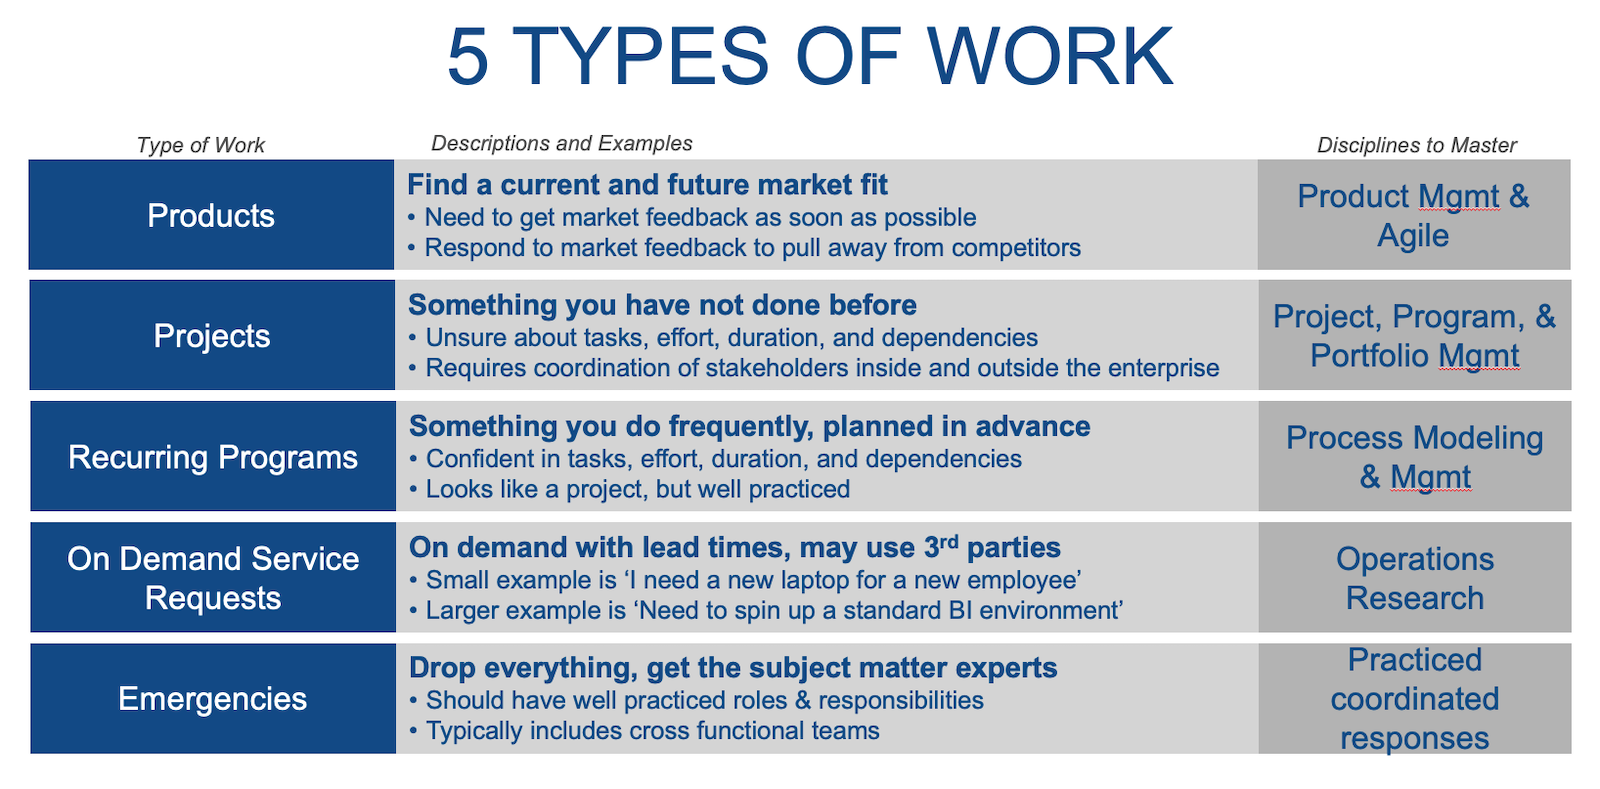 5 types of work